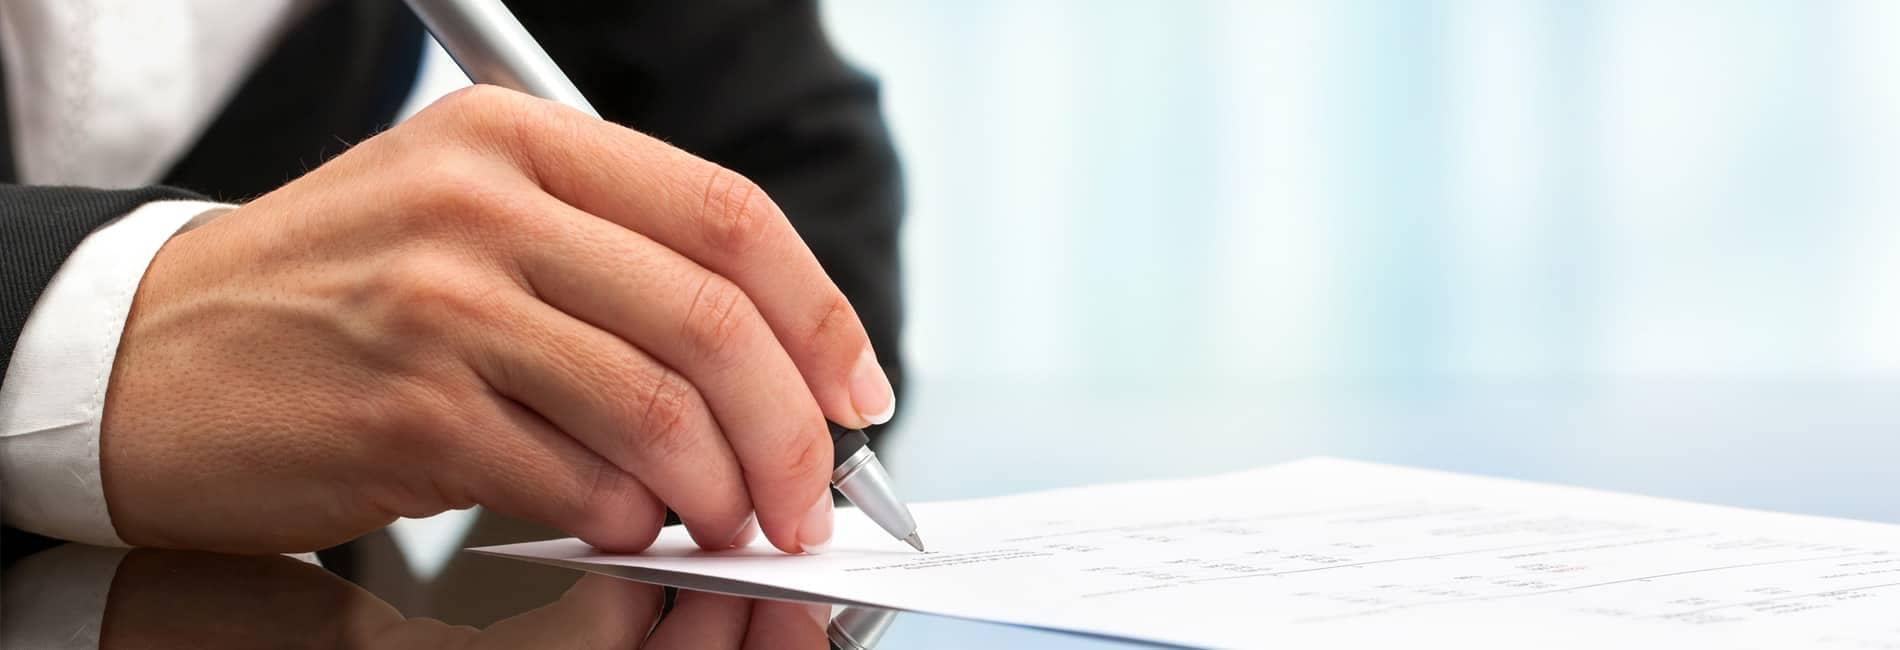 Man signs finance papers with pen